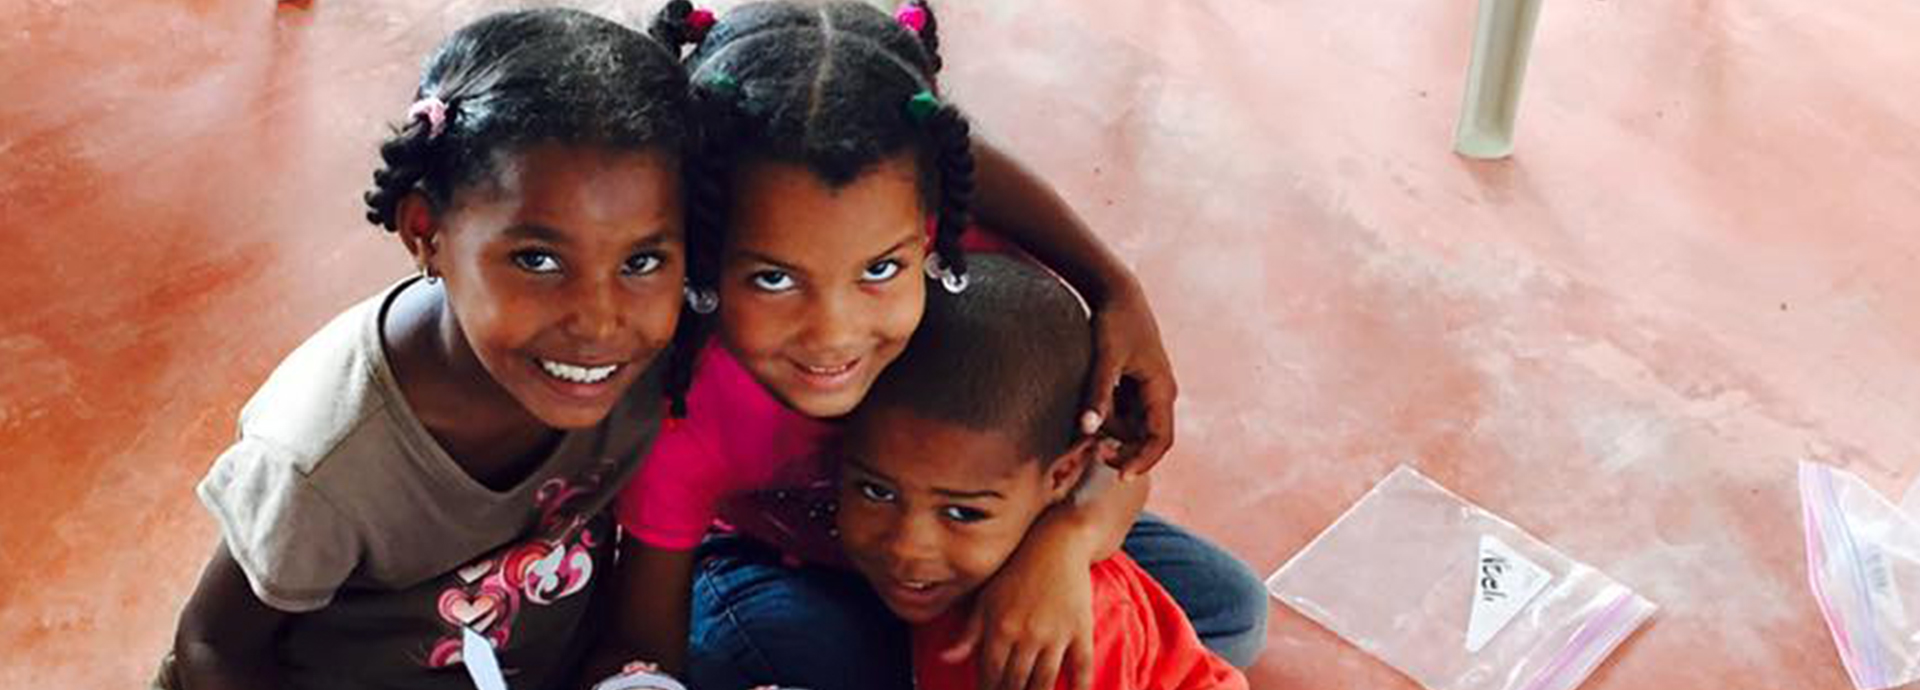 Global Missions to the Dominican Republic (December 15-21)